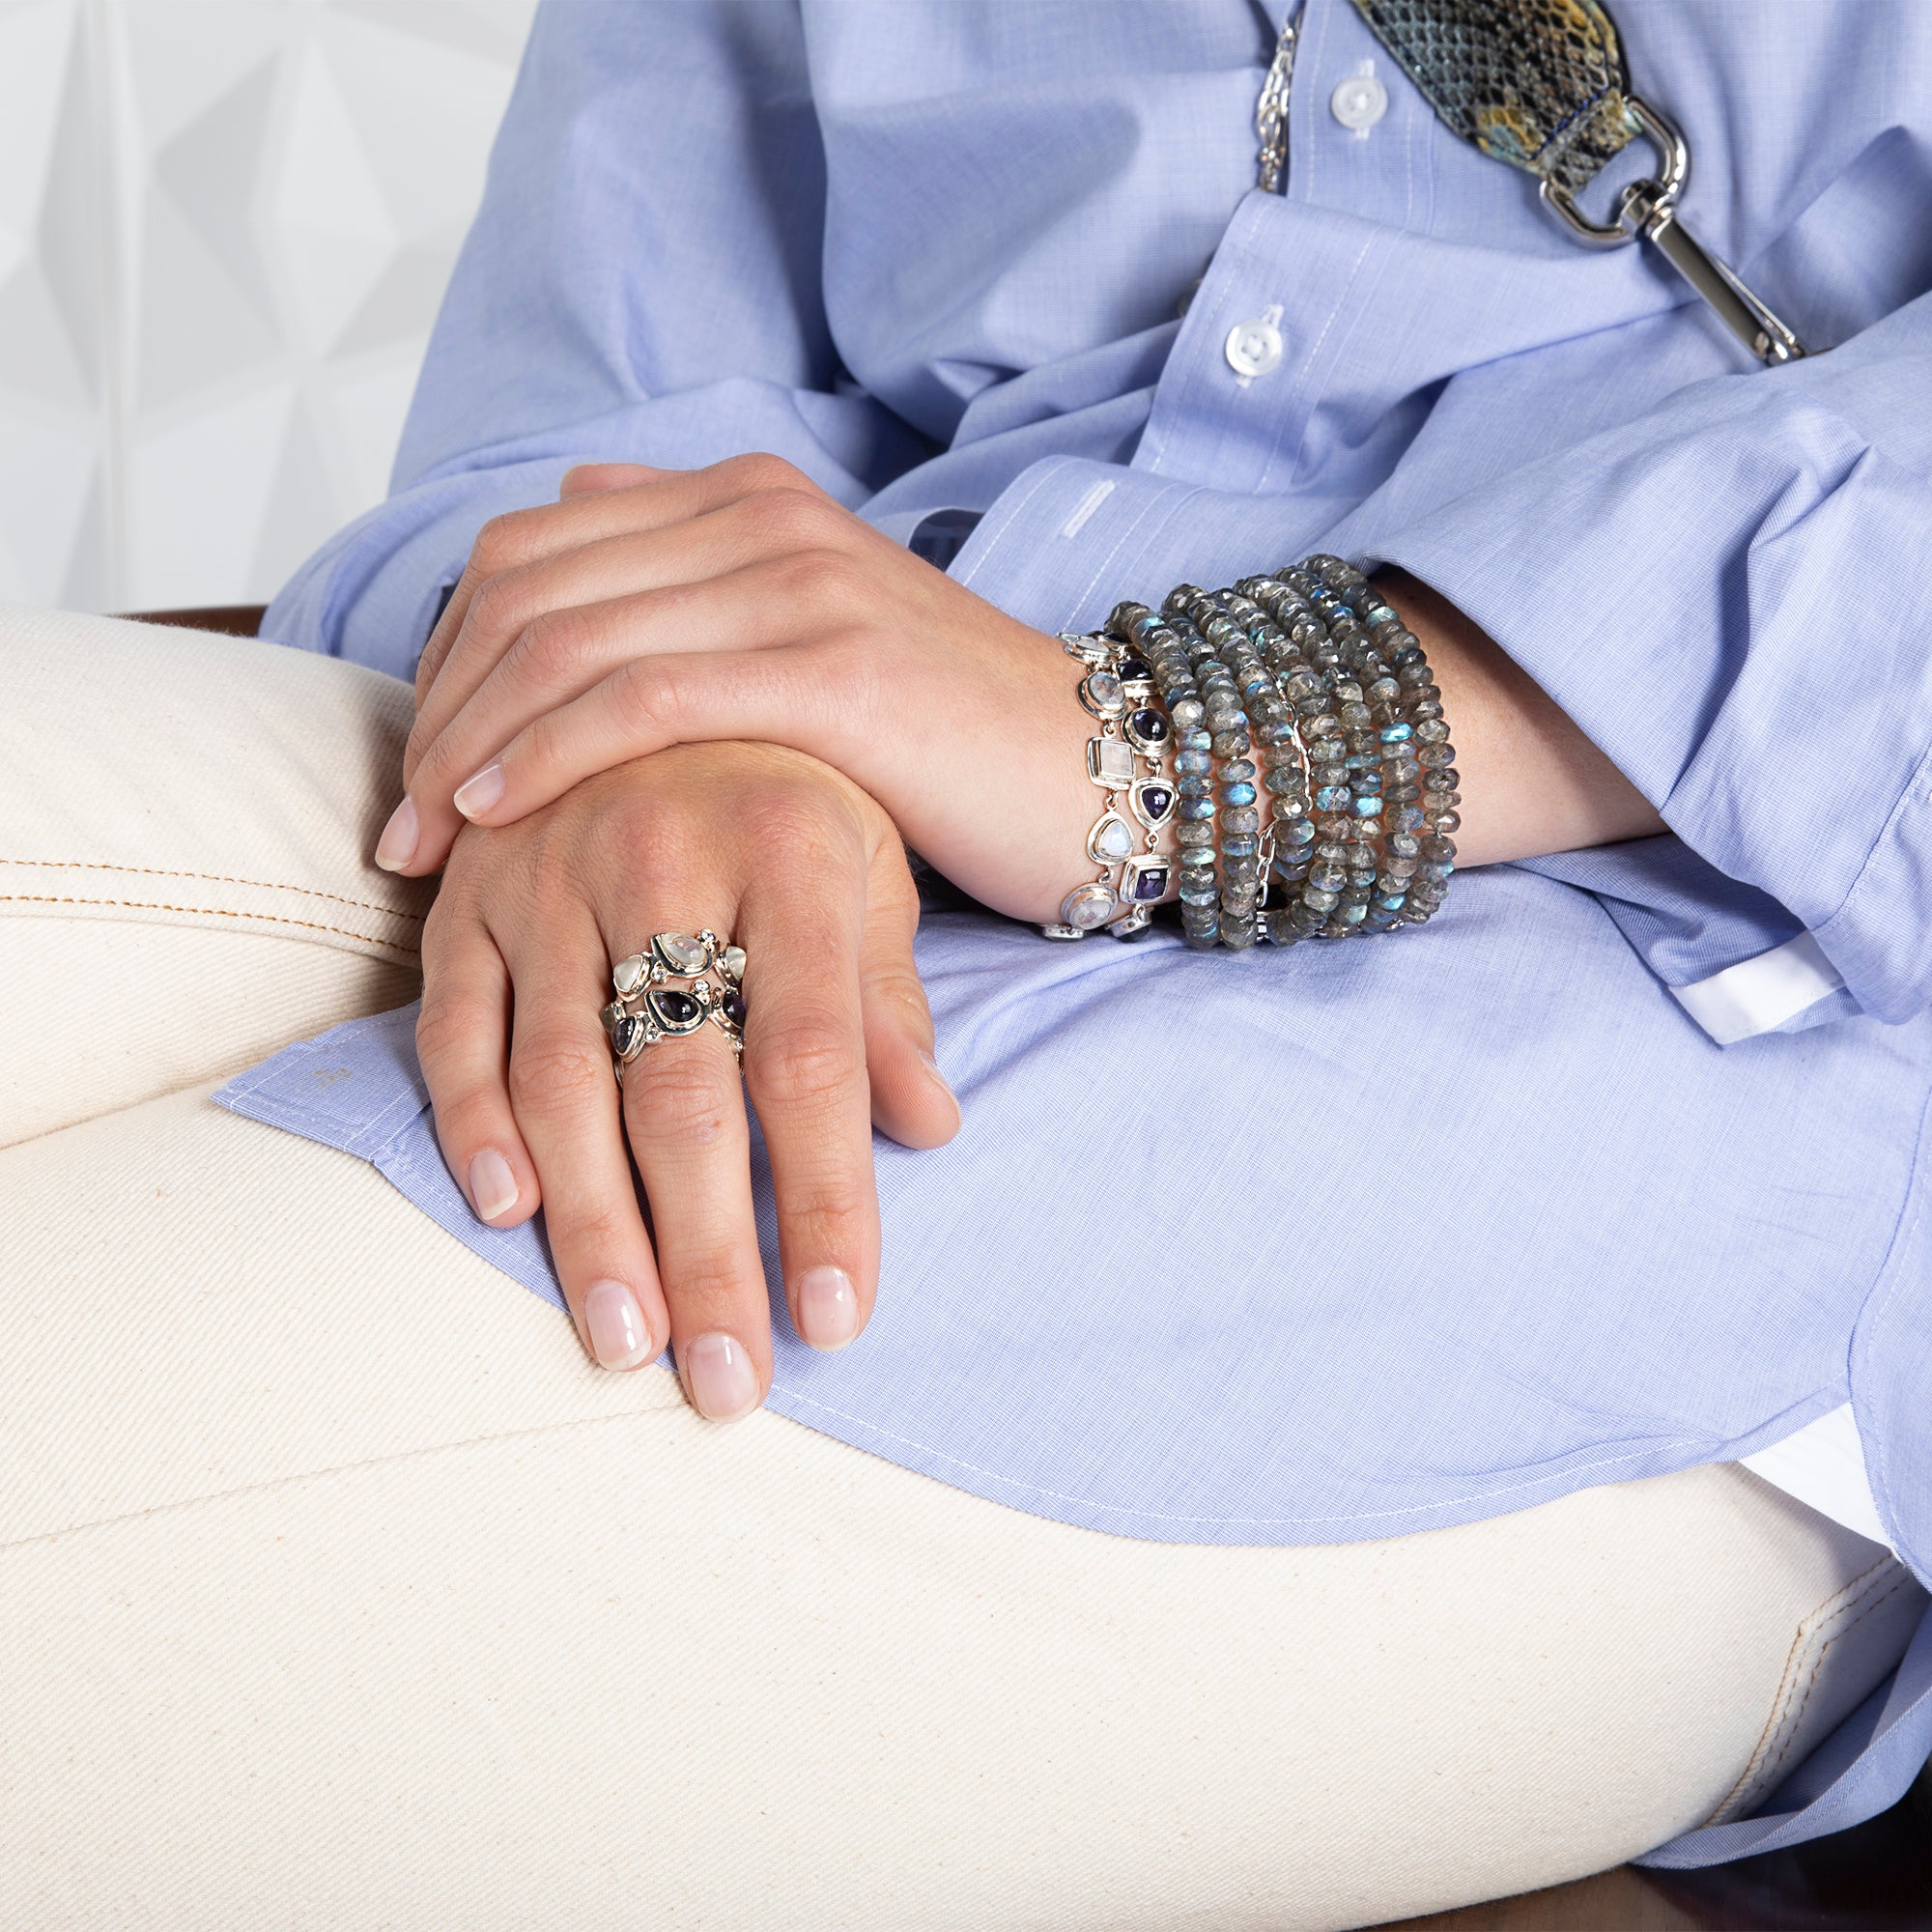 Darby Scott mosaic rings and bracelets